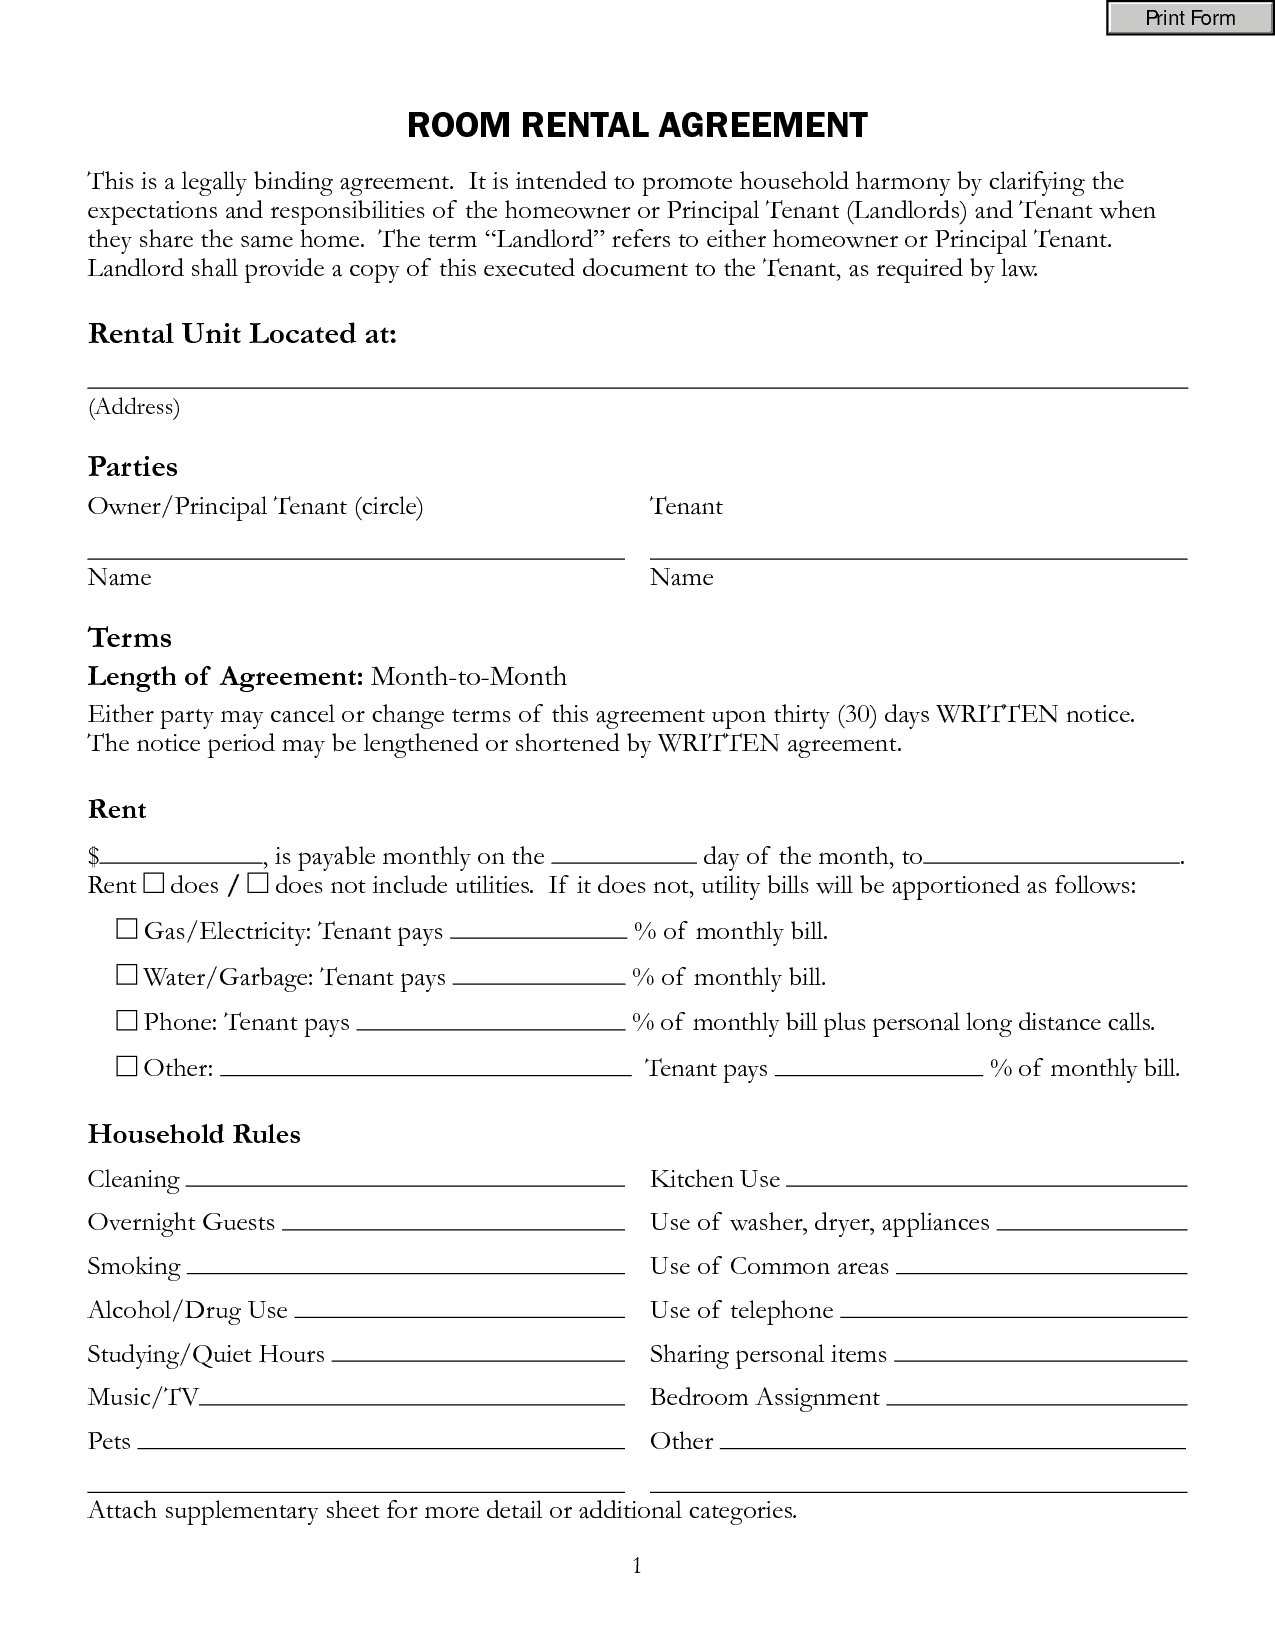 rental contract template free - top 5 resources to get free rental agreement templates